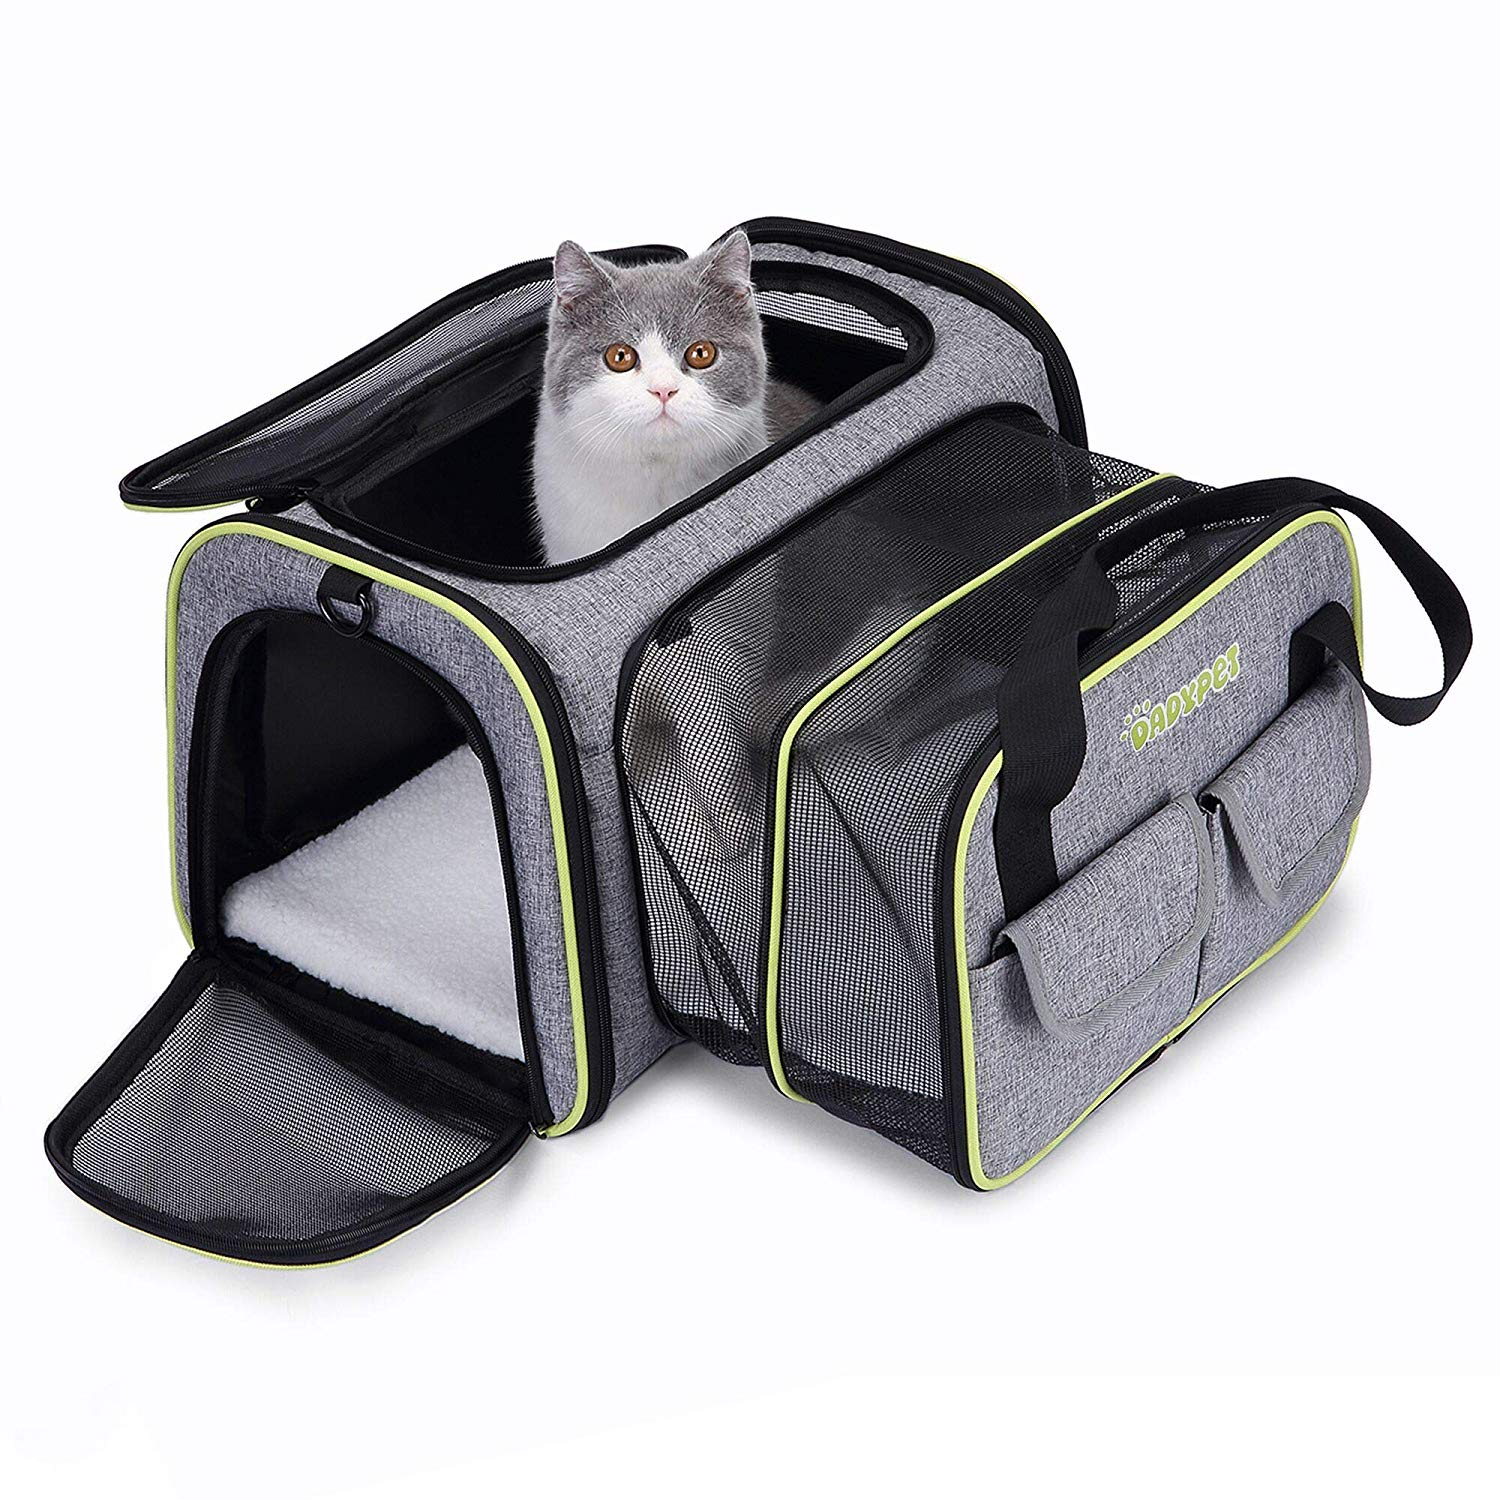 DADYPET Pet carrier, Expandable Travel Bag For Puppy Dogs Cats